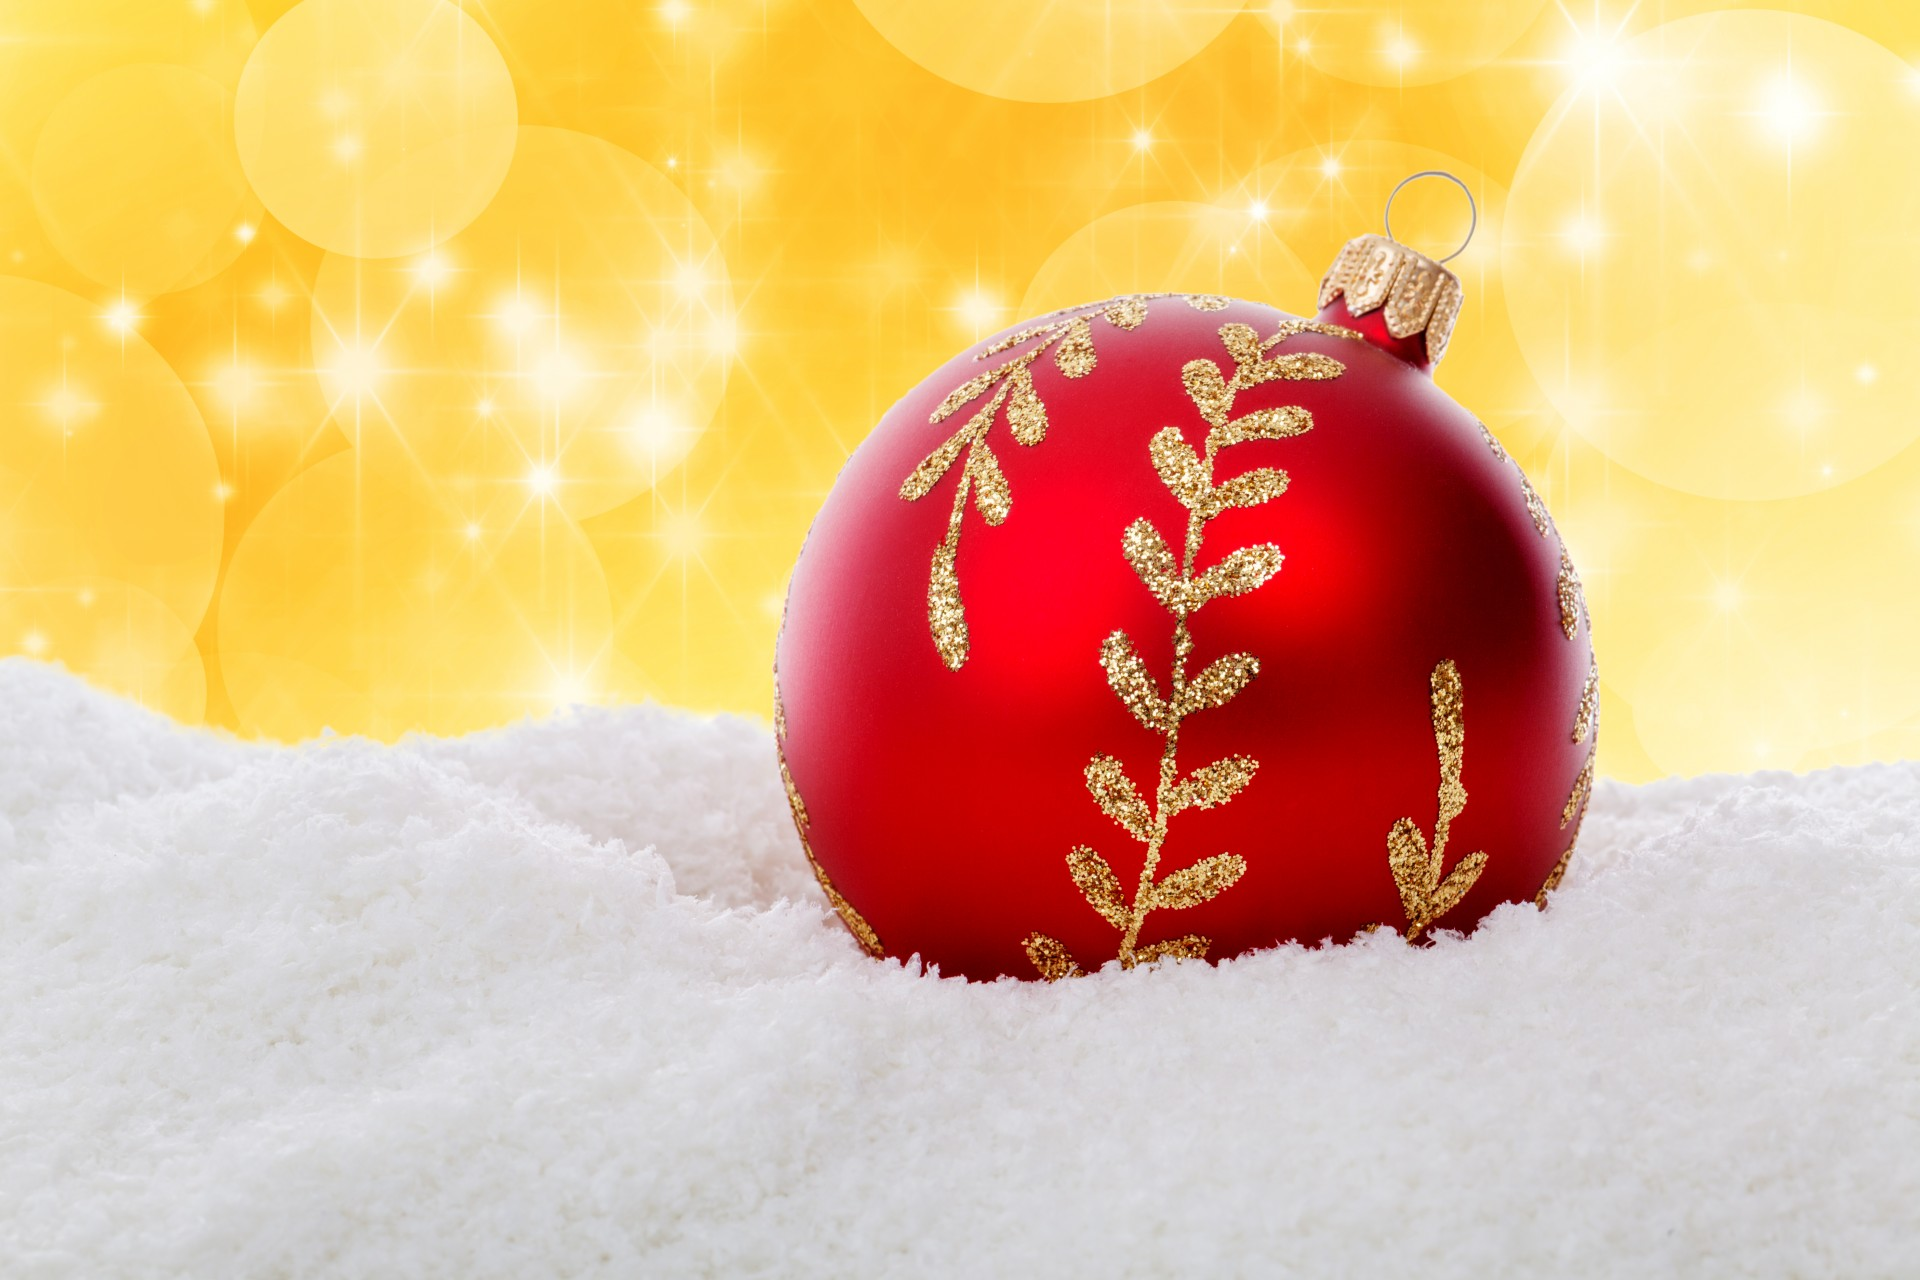 Red Christmas Ball In Snow Free Stock Photo Public